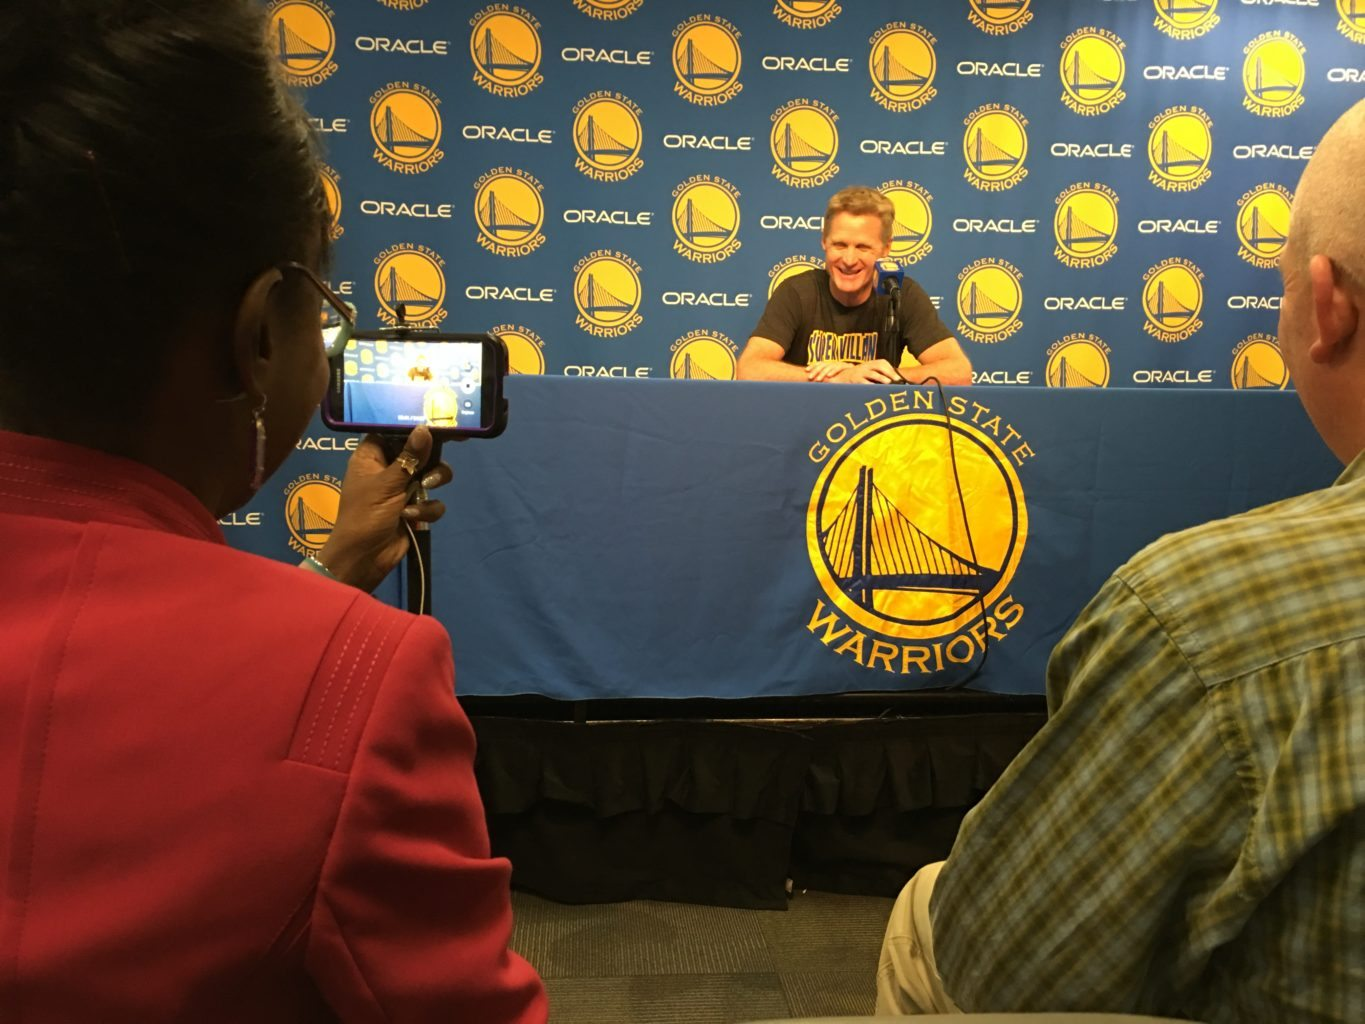 Steve Kerr takes the stage before a regular season matchup. By Karl Buscheck.